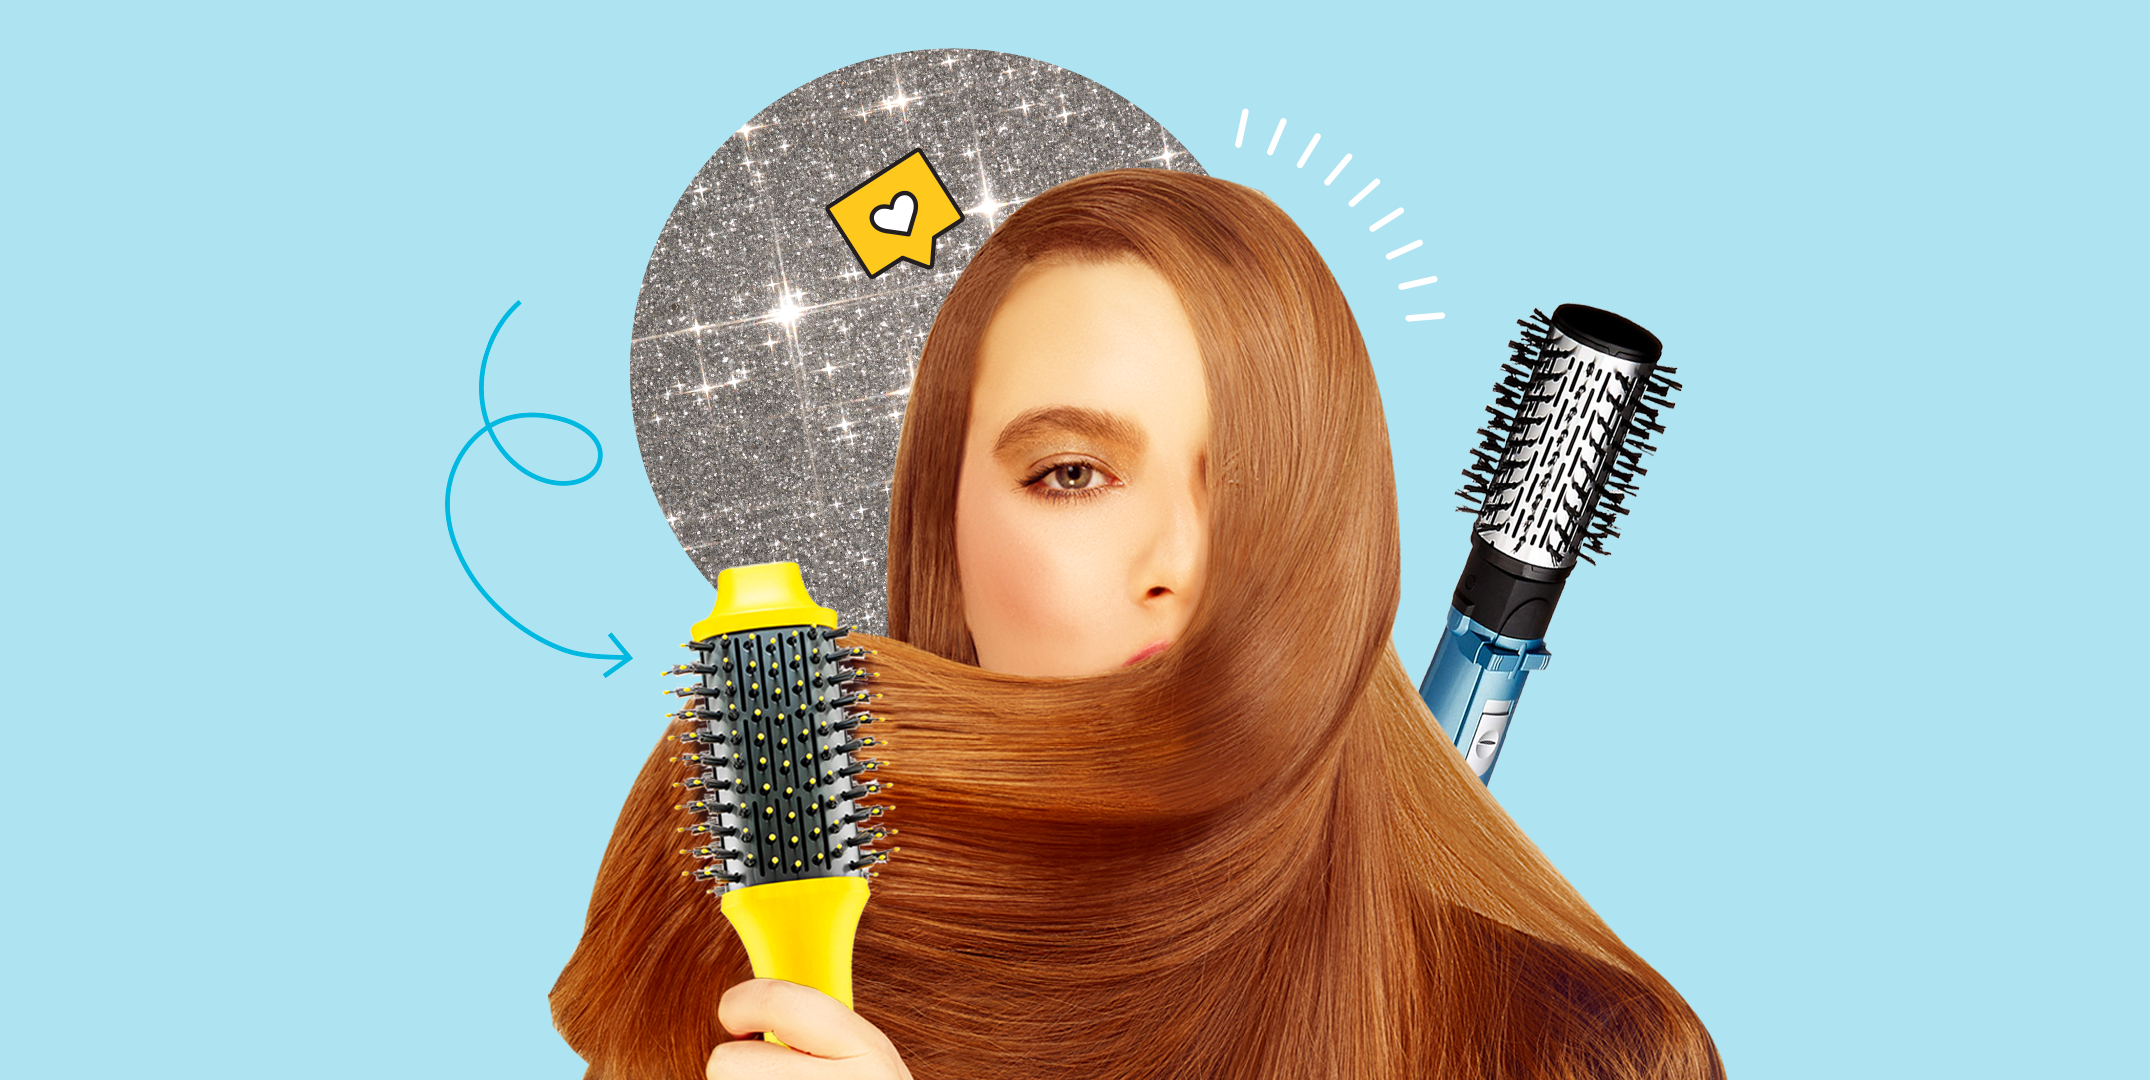 12 Best Hair Dryer Brushes for All Hair Types 12 - Hot Air Brushes